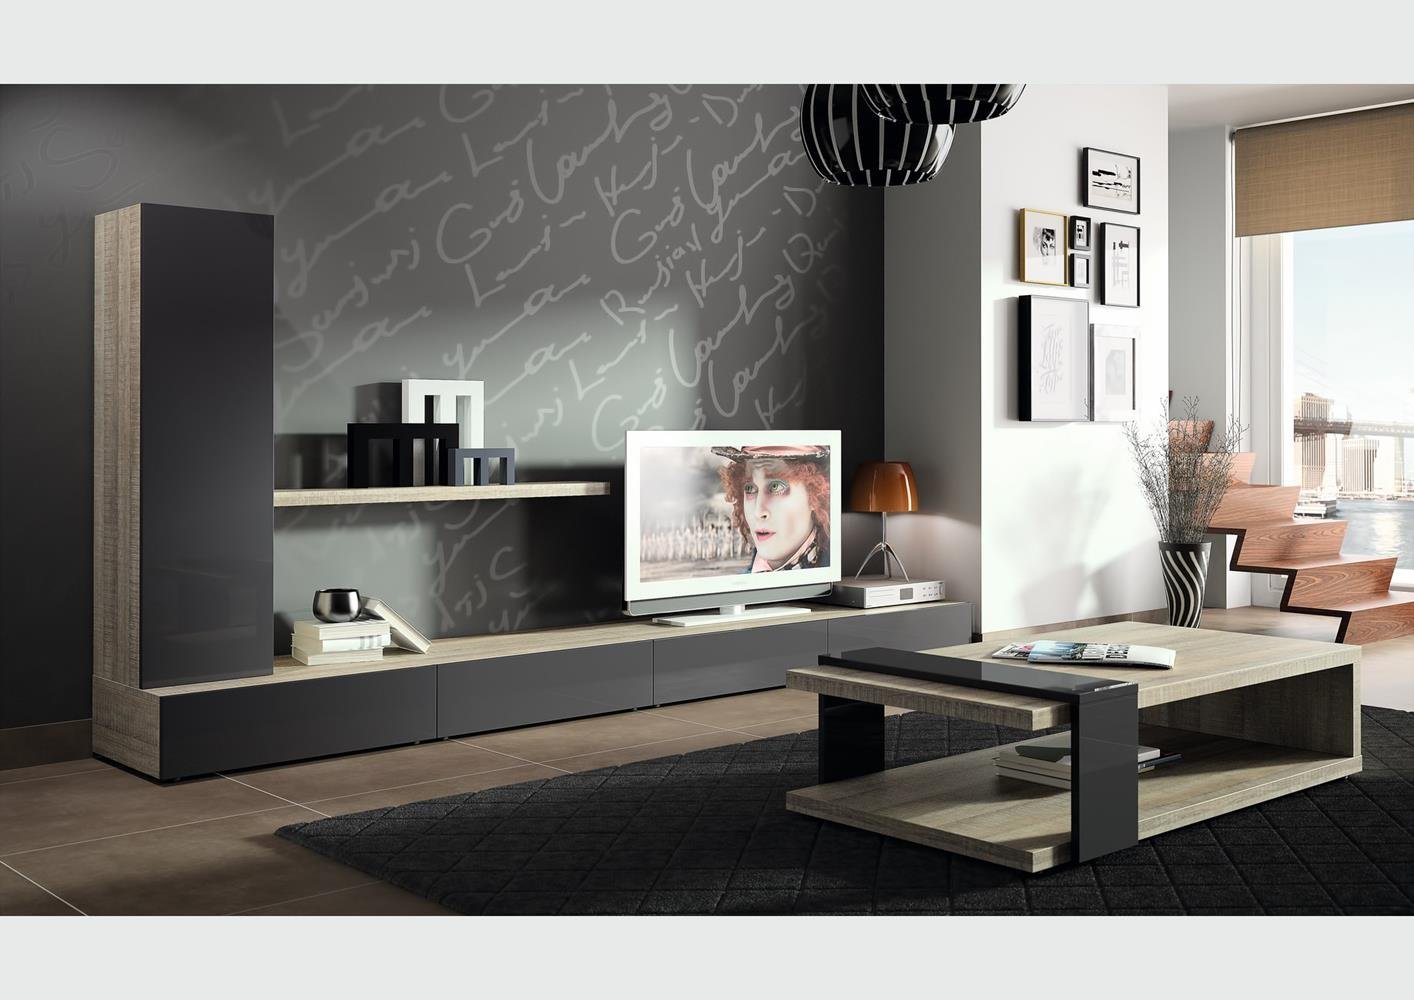 Table Tv Avec Support Maison Design Wiblia Com # Meuble Tv Avec Support Mural